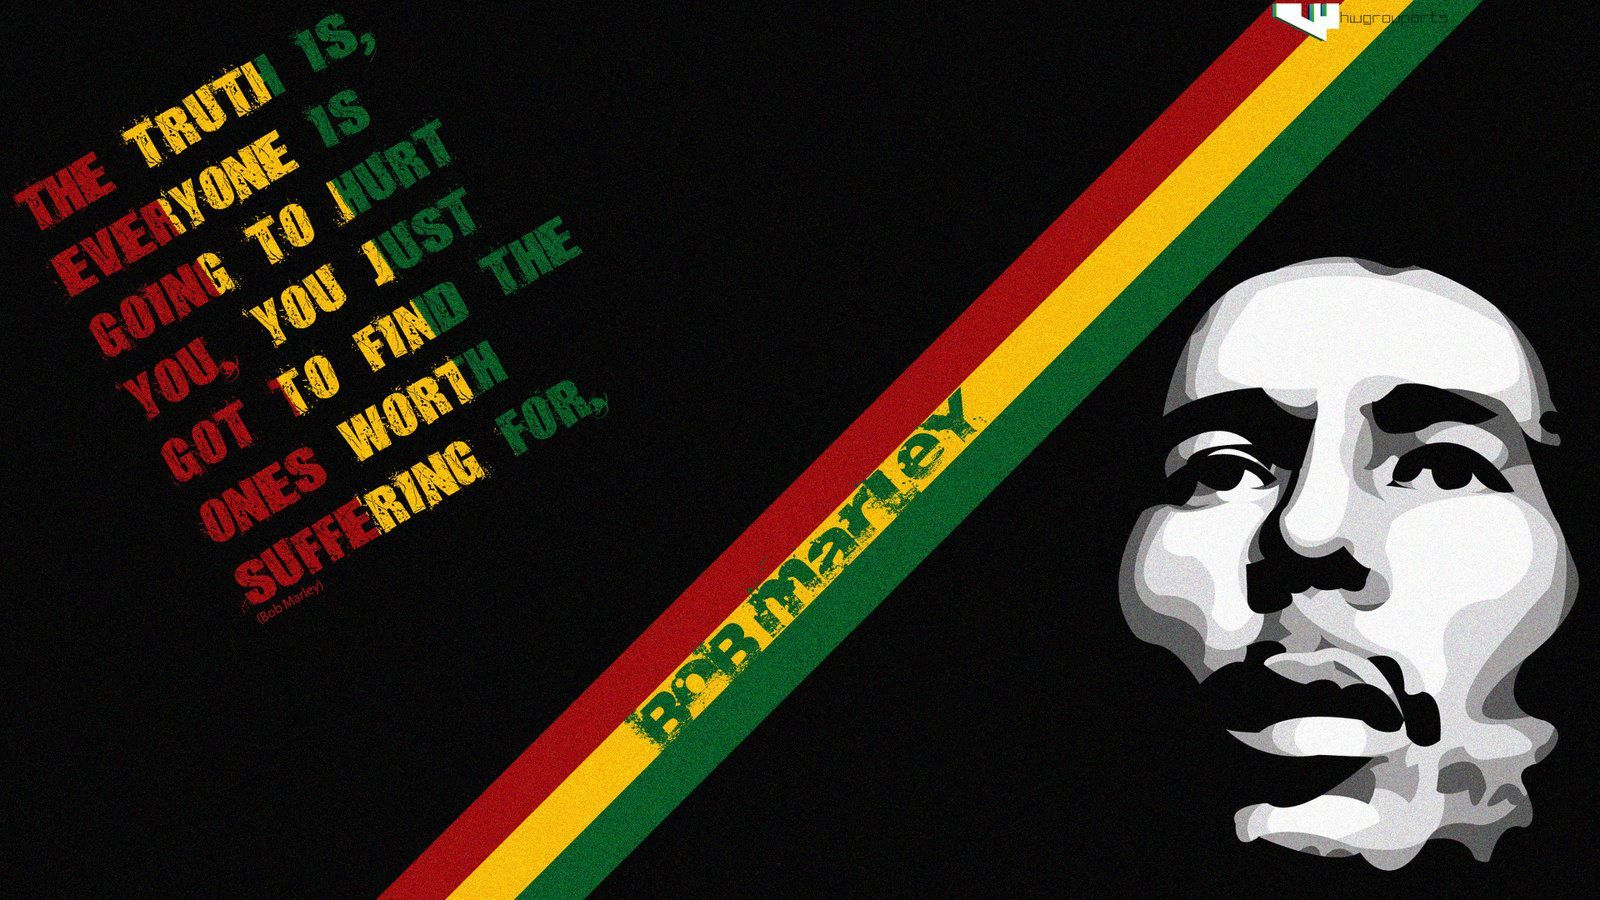 Bob Marley Quotes Wallpapers Top Free Bob Marley Quotes